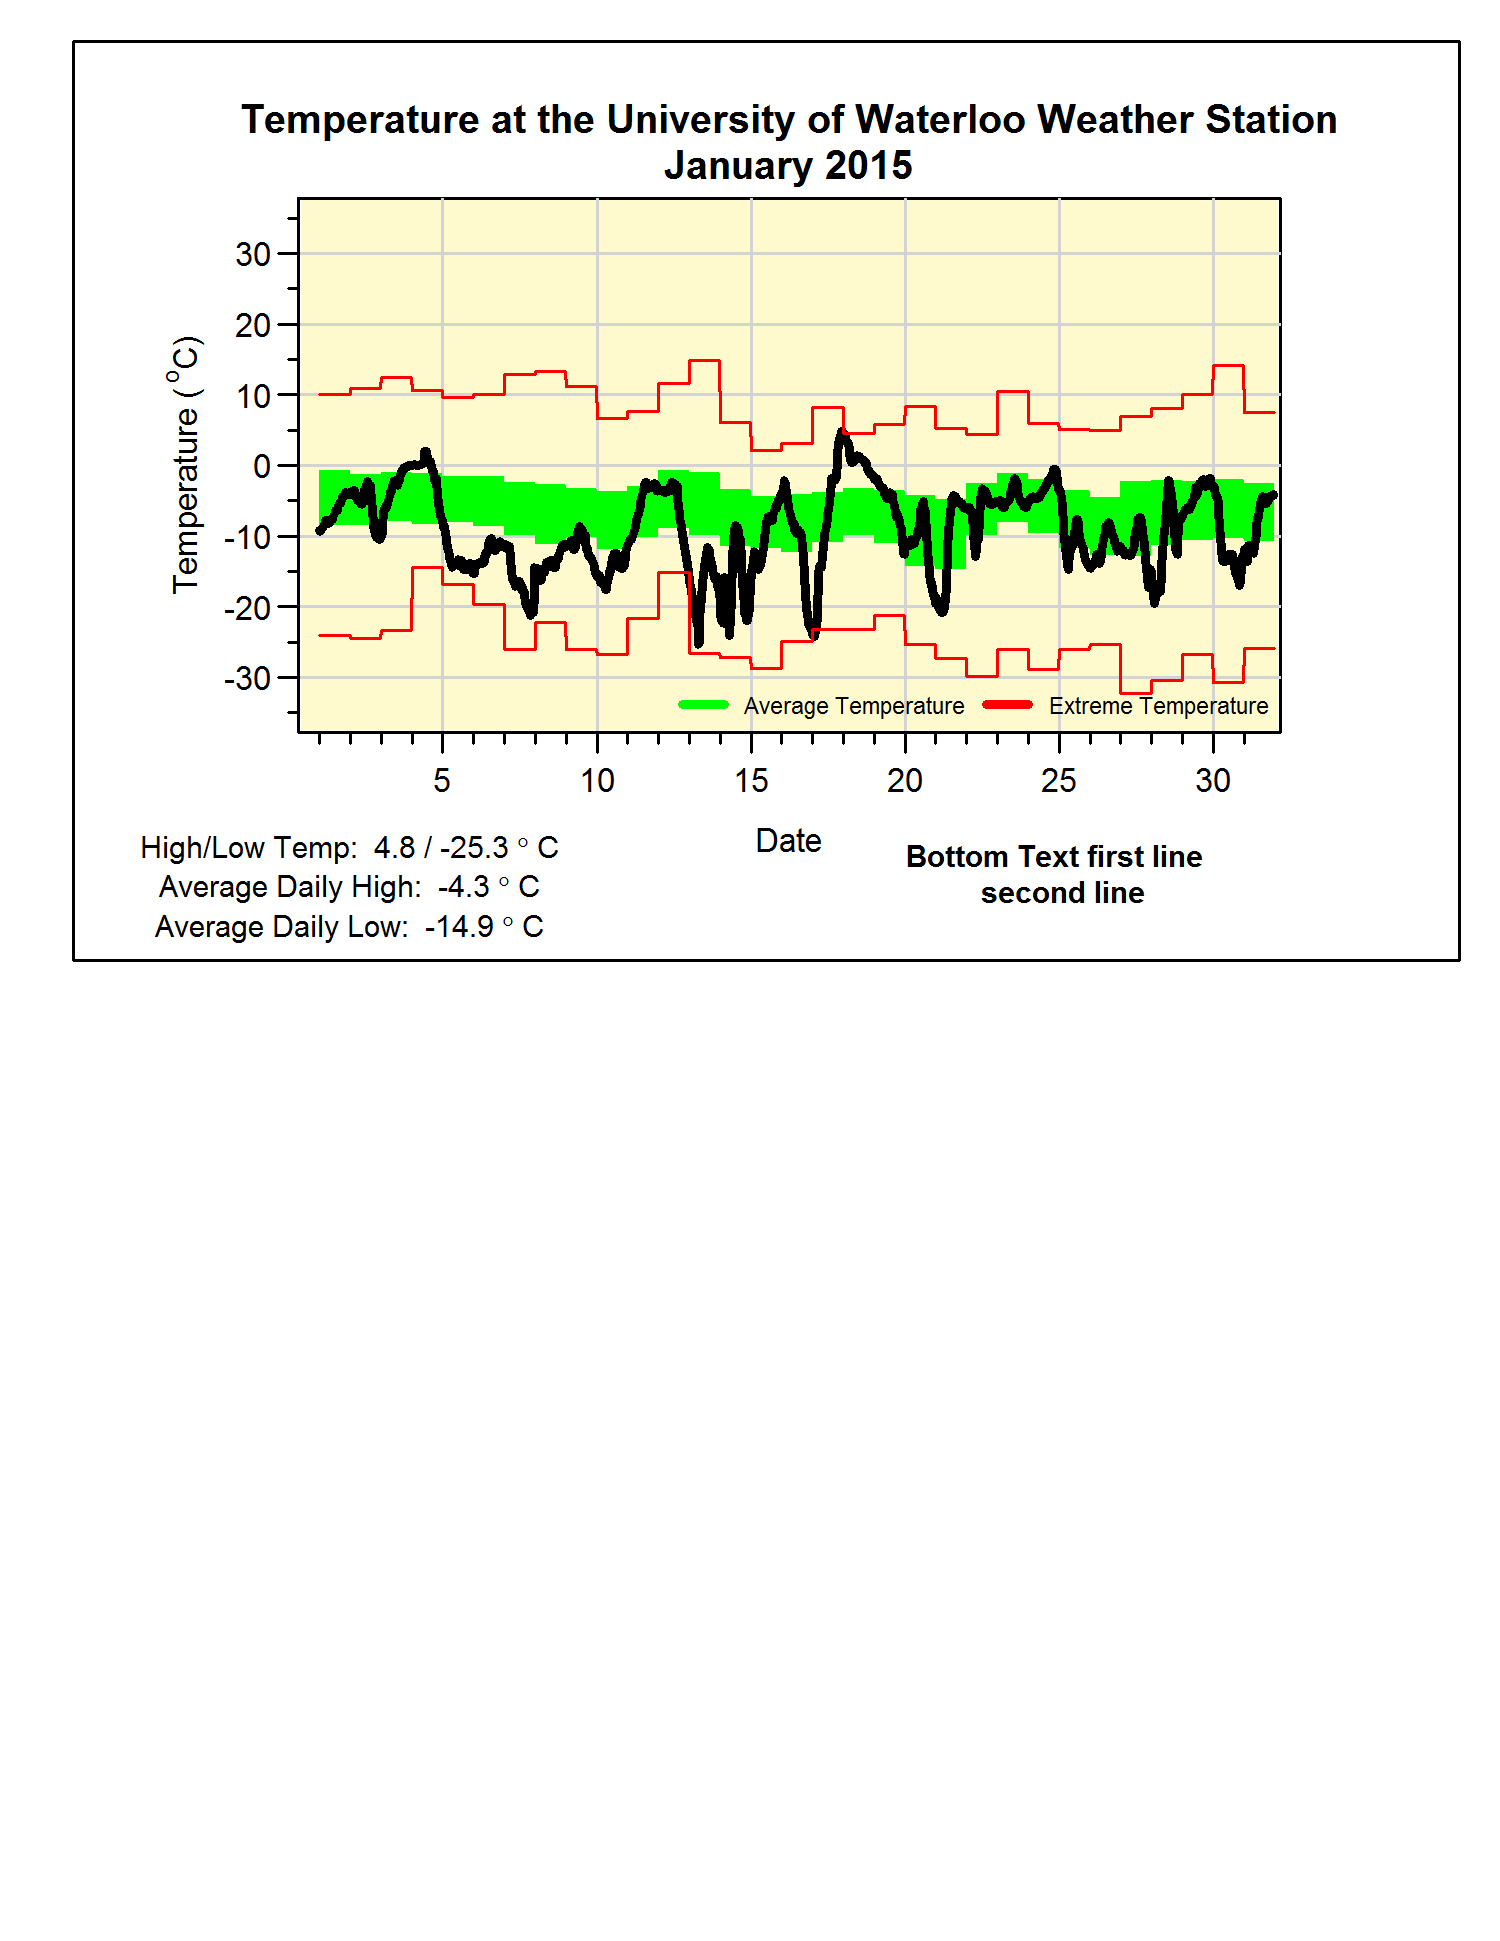 Data archives for University of Waterloo weather station